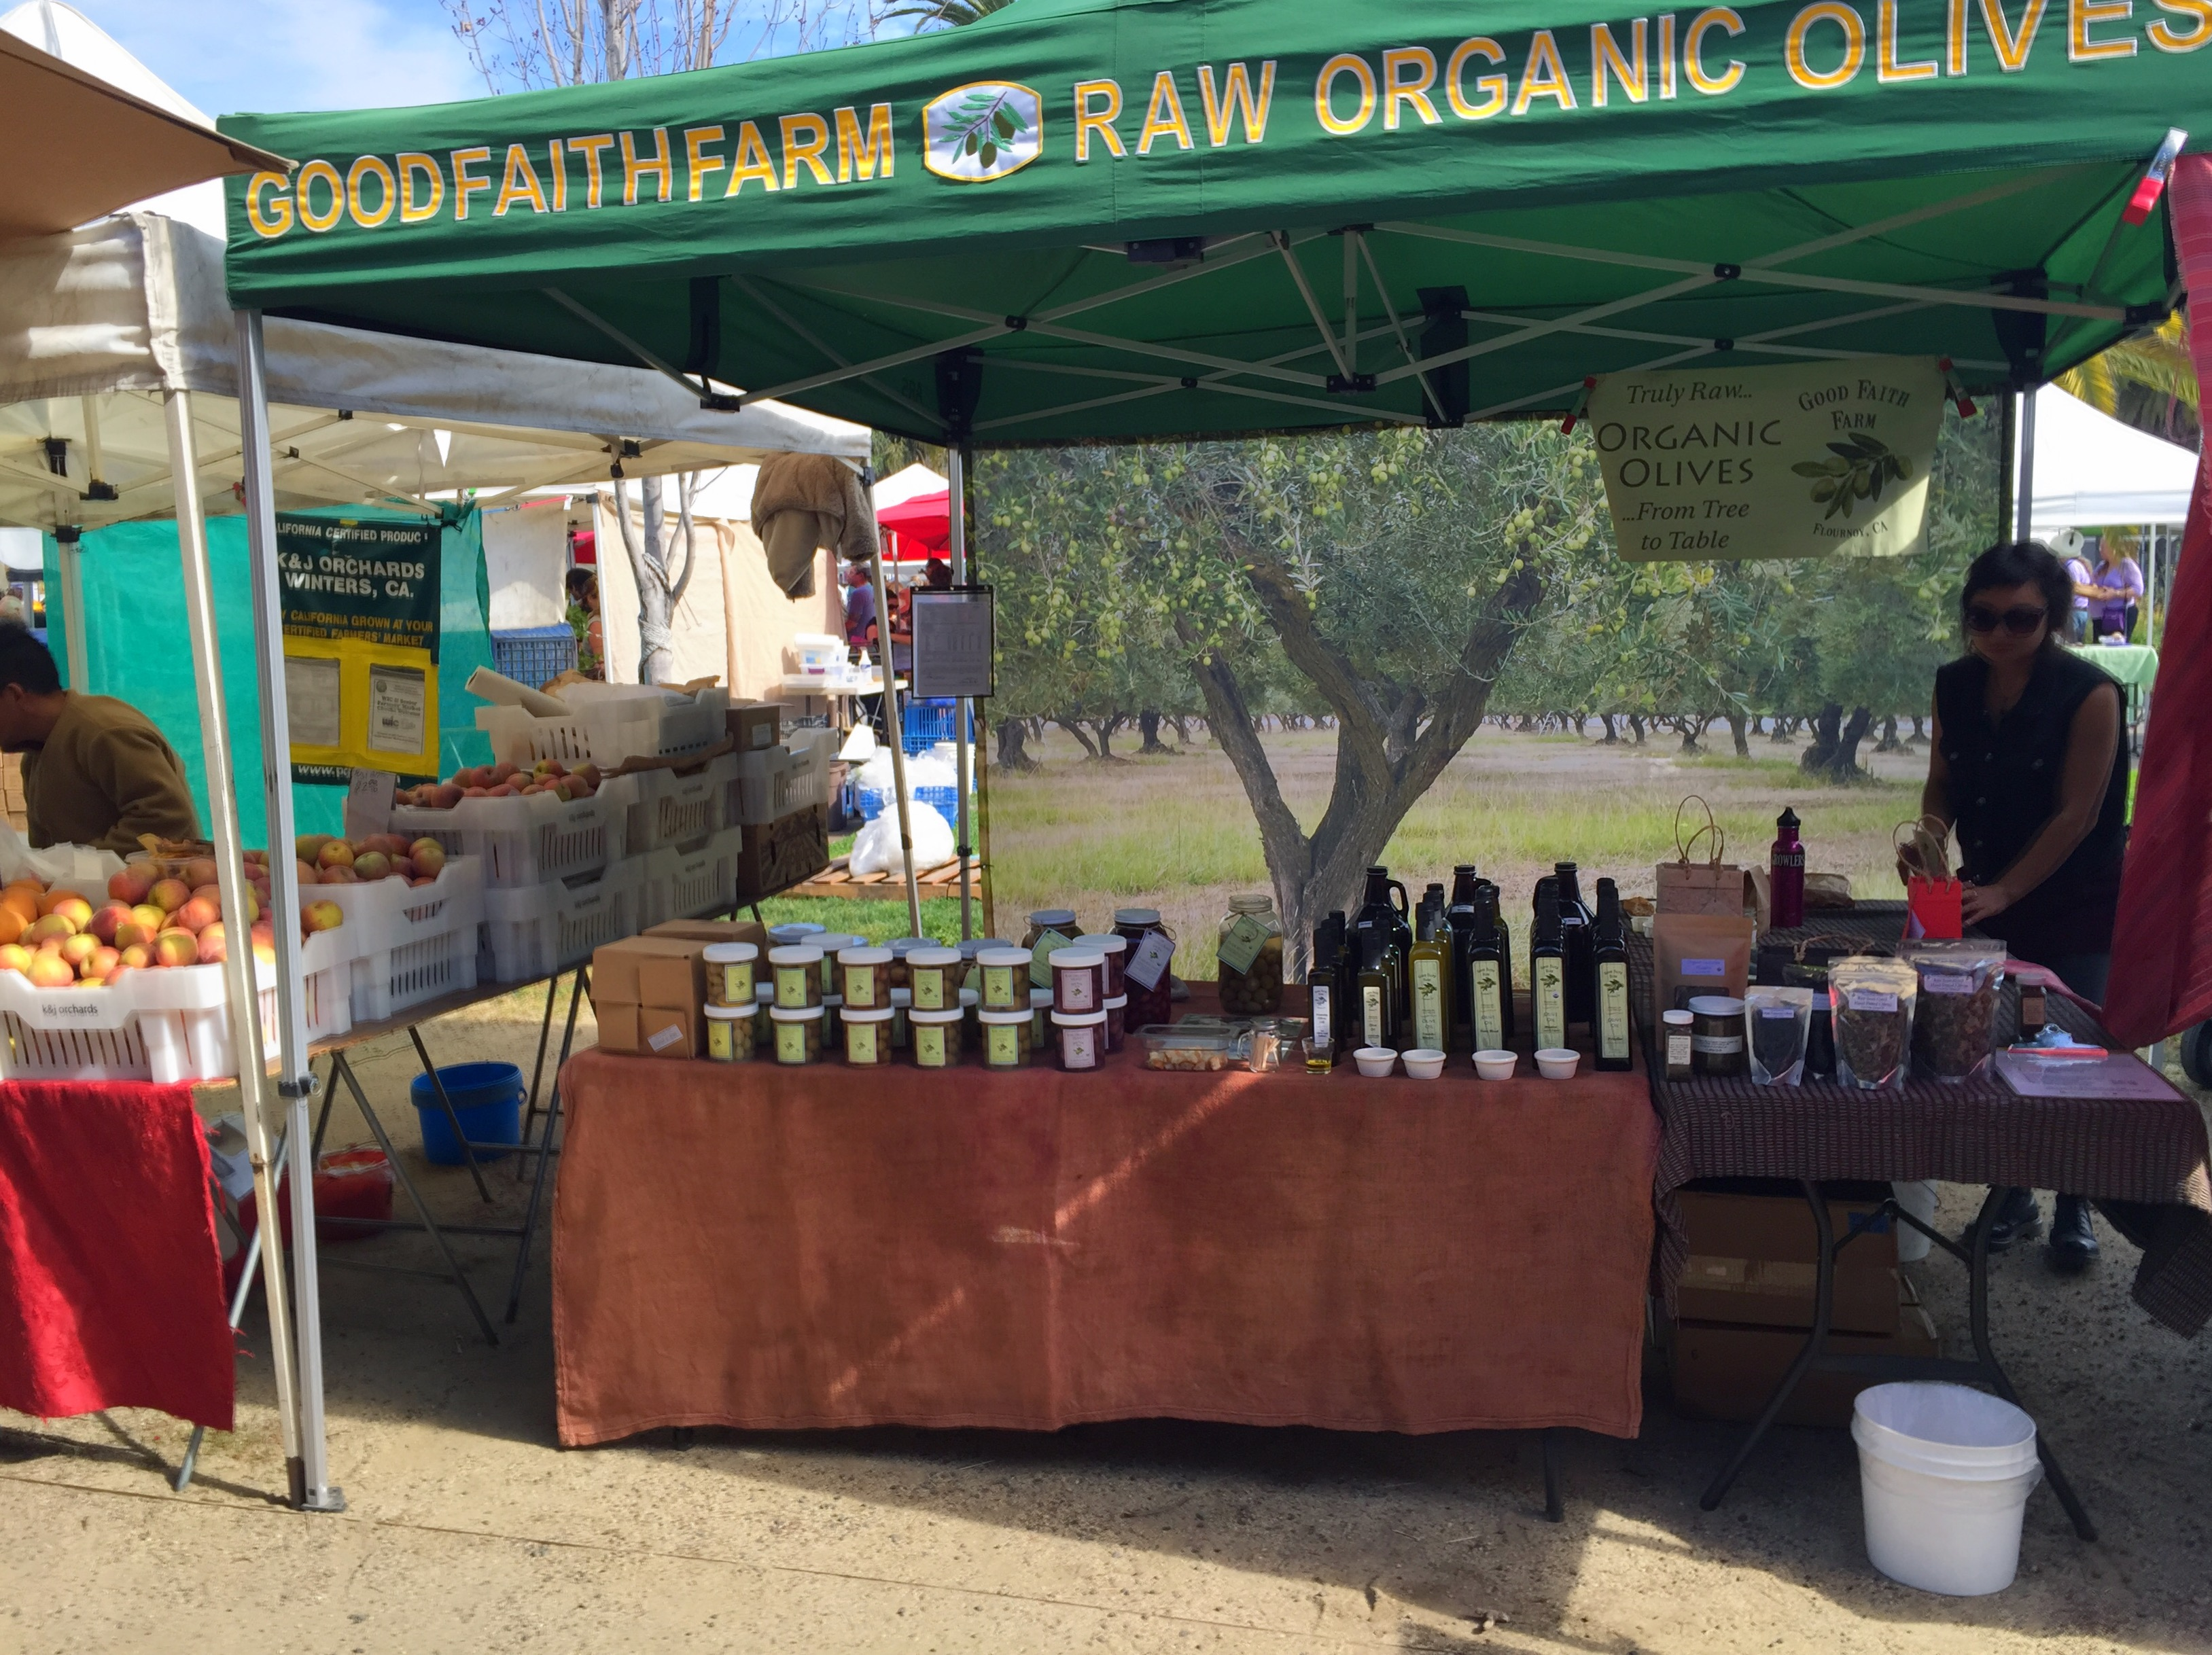 Organic Olives and Olive Oil